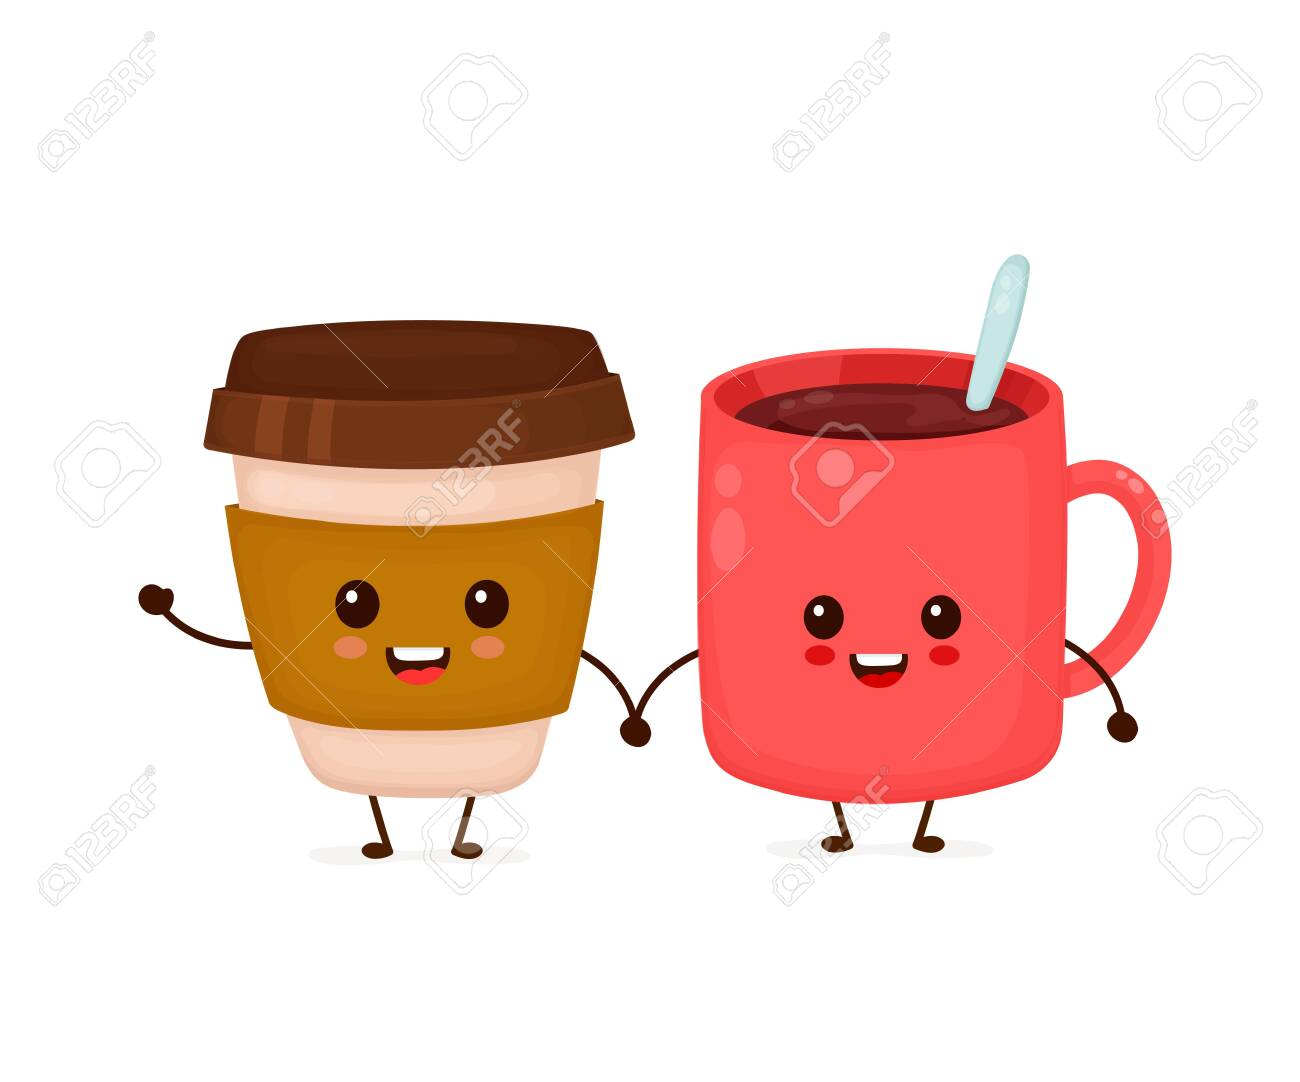 Happy Cute Smiling Funny Coffee Cups Friends Vector Flat Cartoon Royalty Free Cliparts Vectors And Stock Illustration Image 128680613